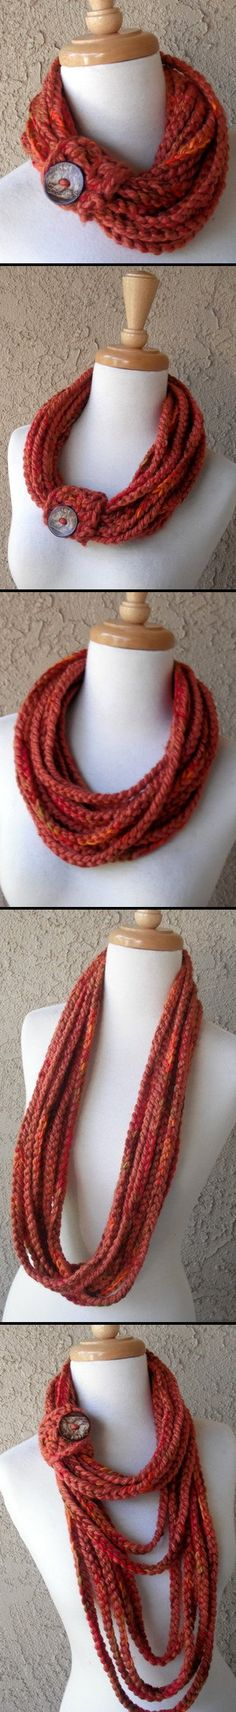 Crochet this scarf to look like a t-shirt scarf - *Inspiration*